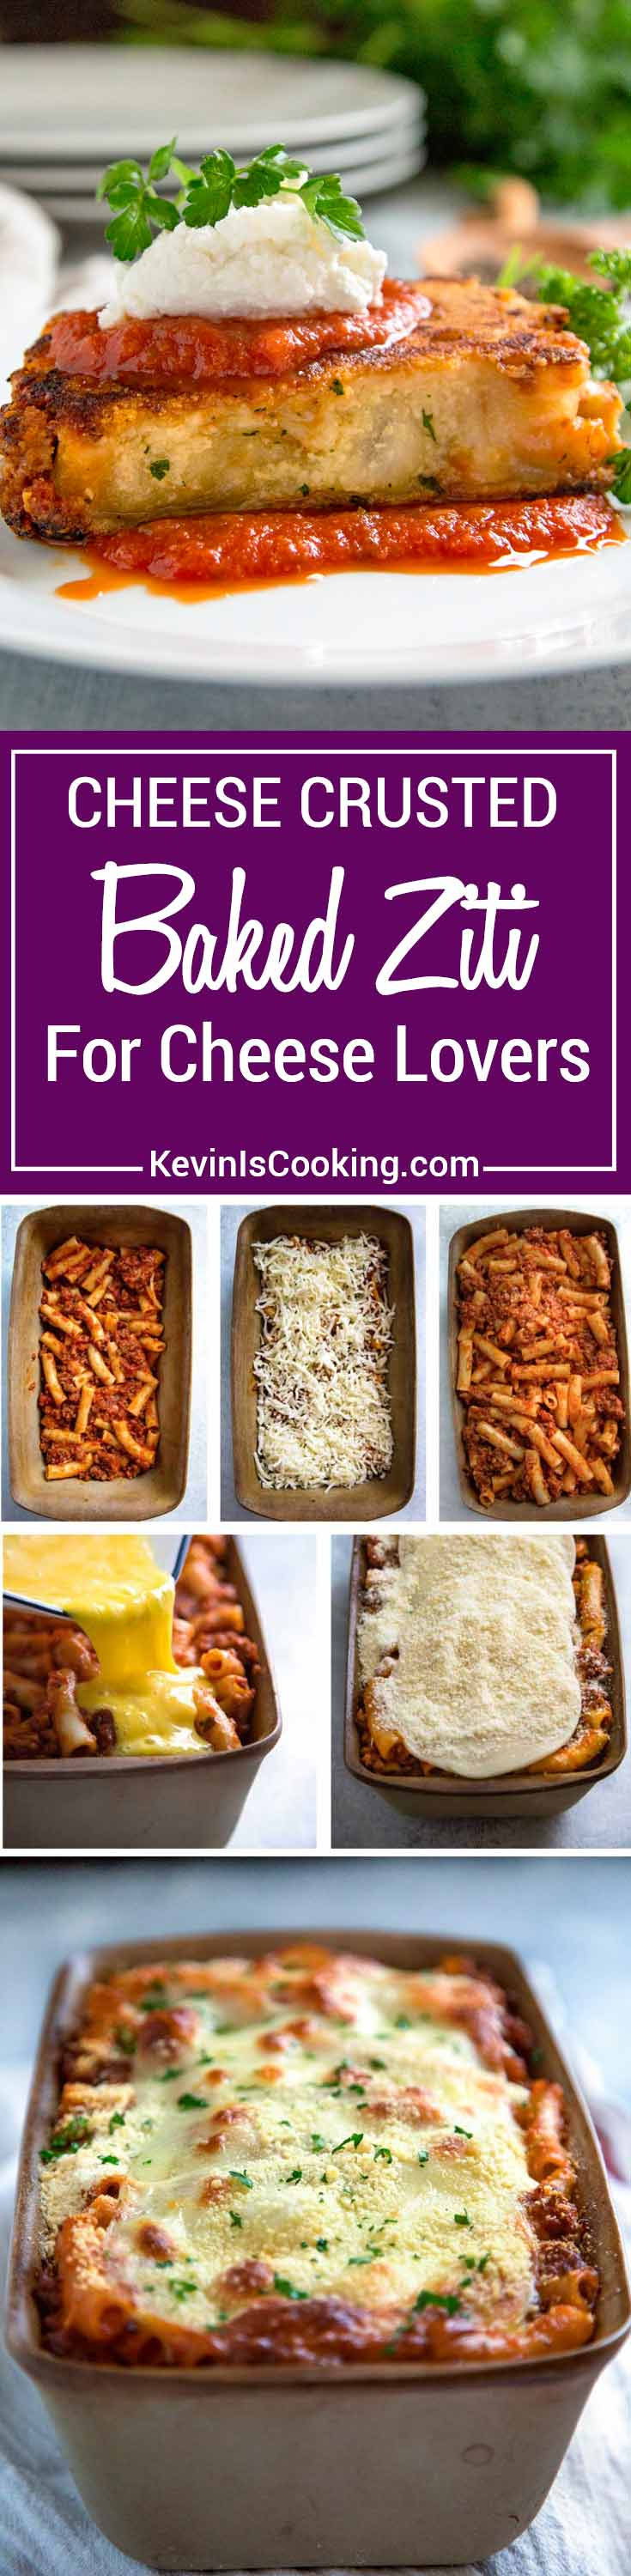 Cheese Crusted Baked Ziti - This classic baked ziti with a bolognese sauce has extra cheese pan fried on each side for extra cheesy goodness.